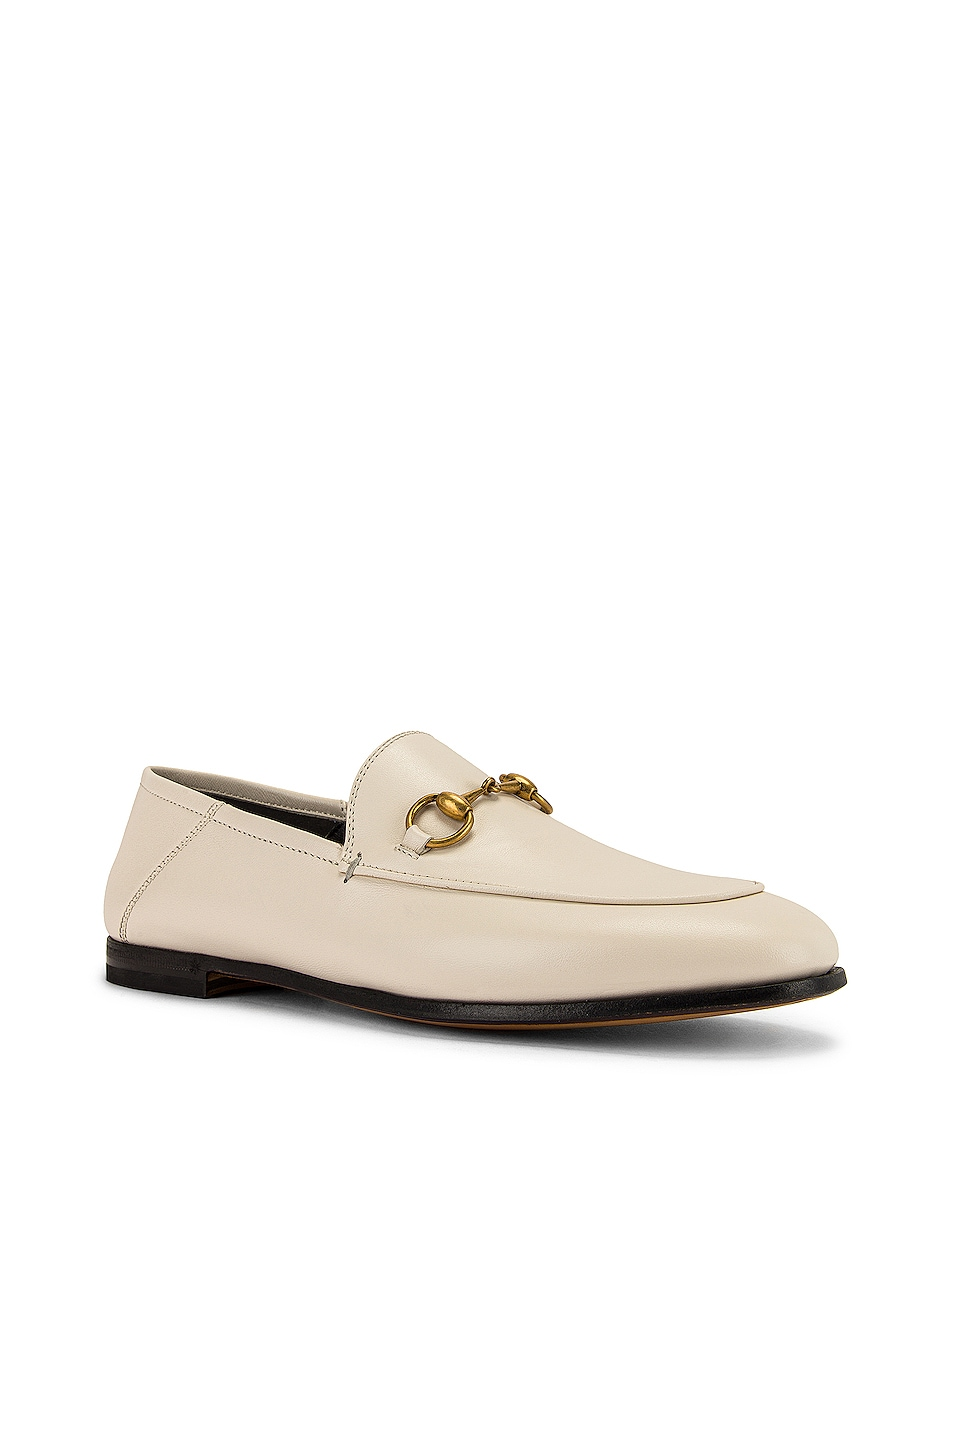 Image 3 of Gucci Leather Horsebit Loafers in Mystic White